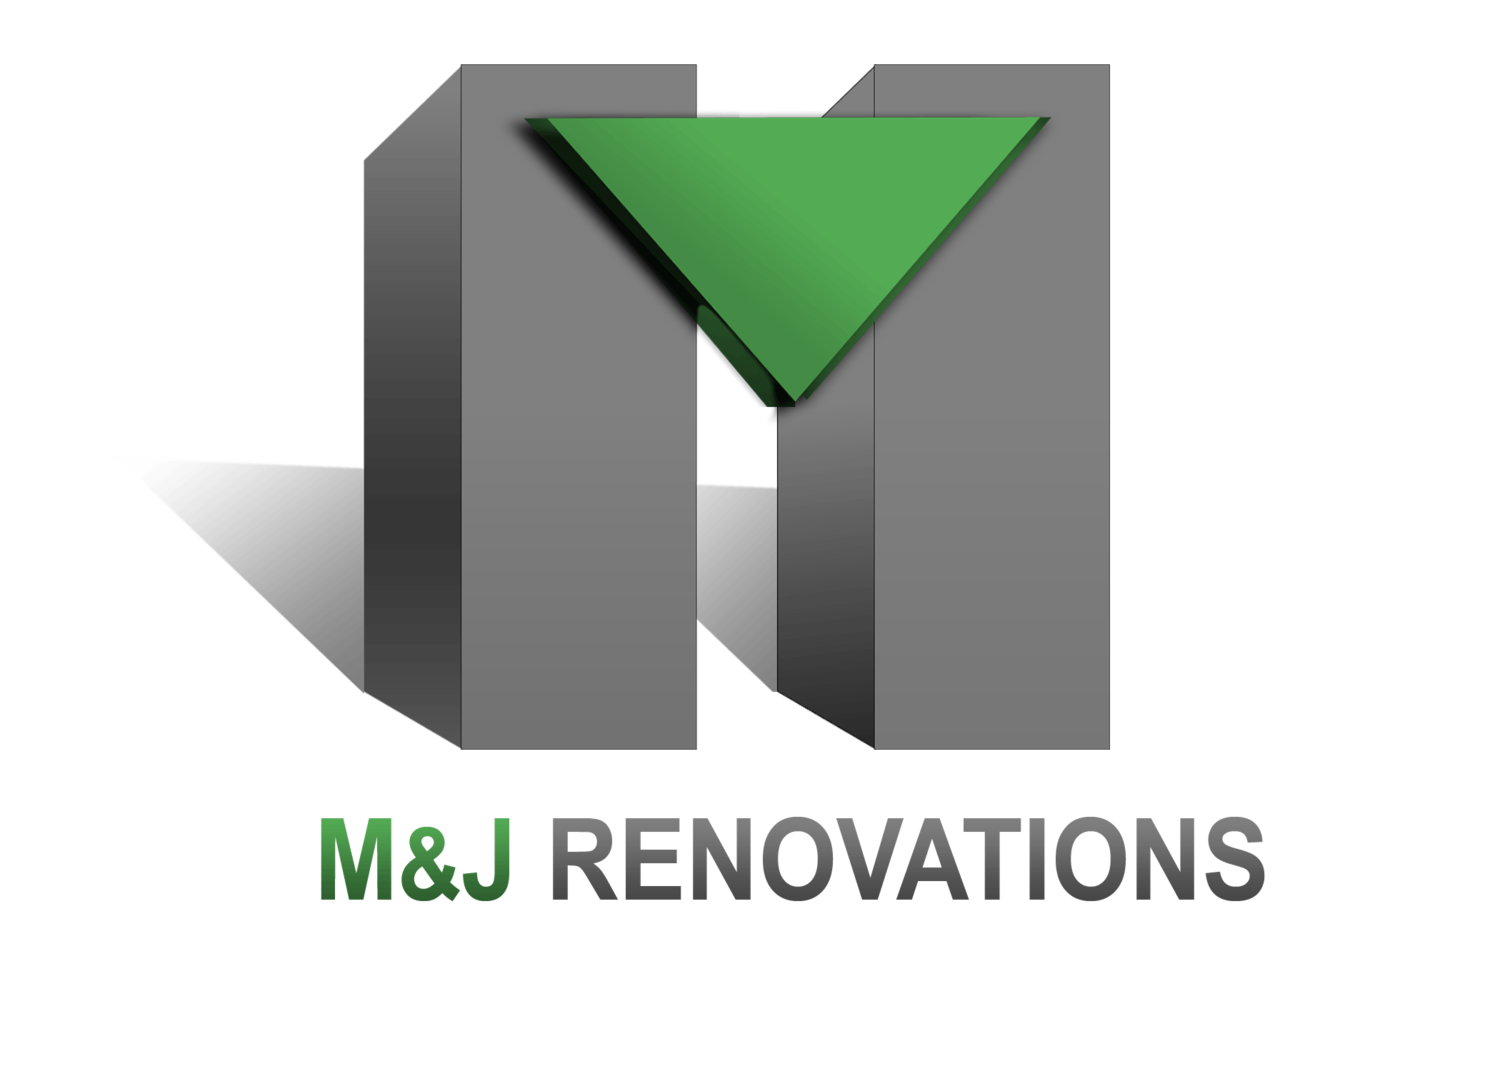 M&J RENOVATIONS INC.